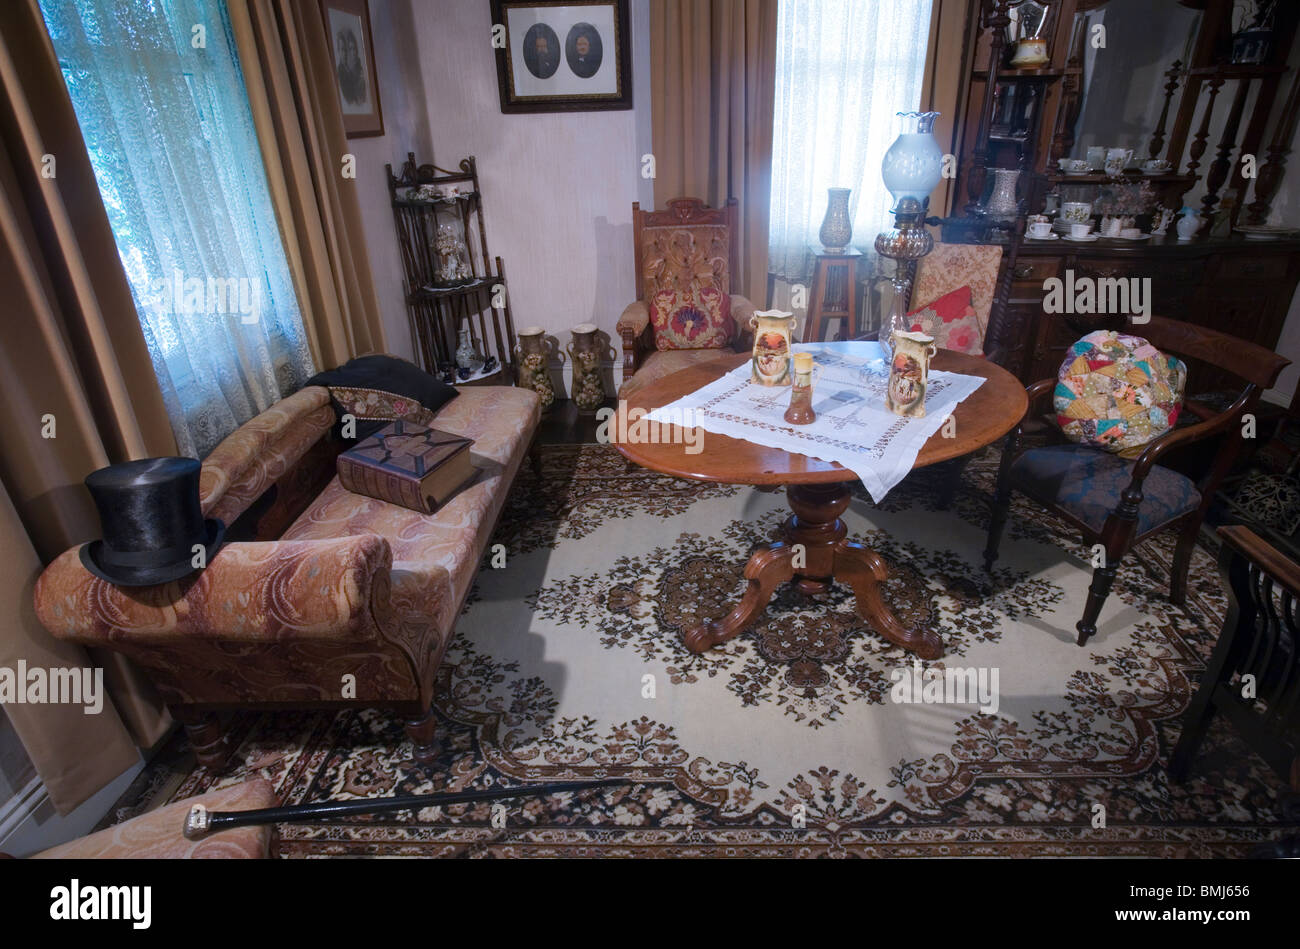 A nineteenth (XIX) century (1800s) living room with Victorian details, Auckland, New Zealand - Stock Image